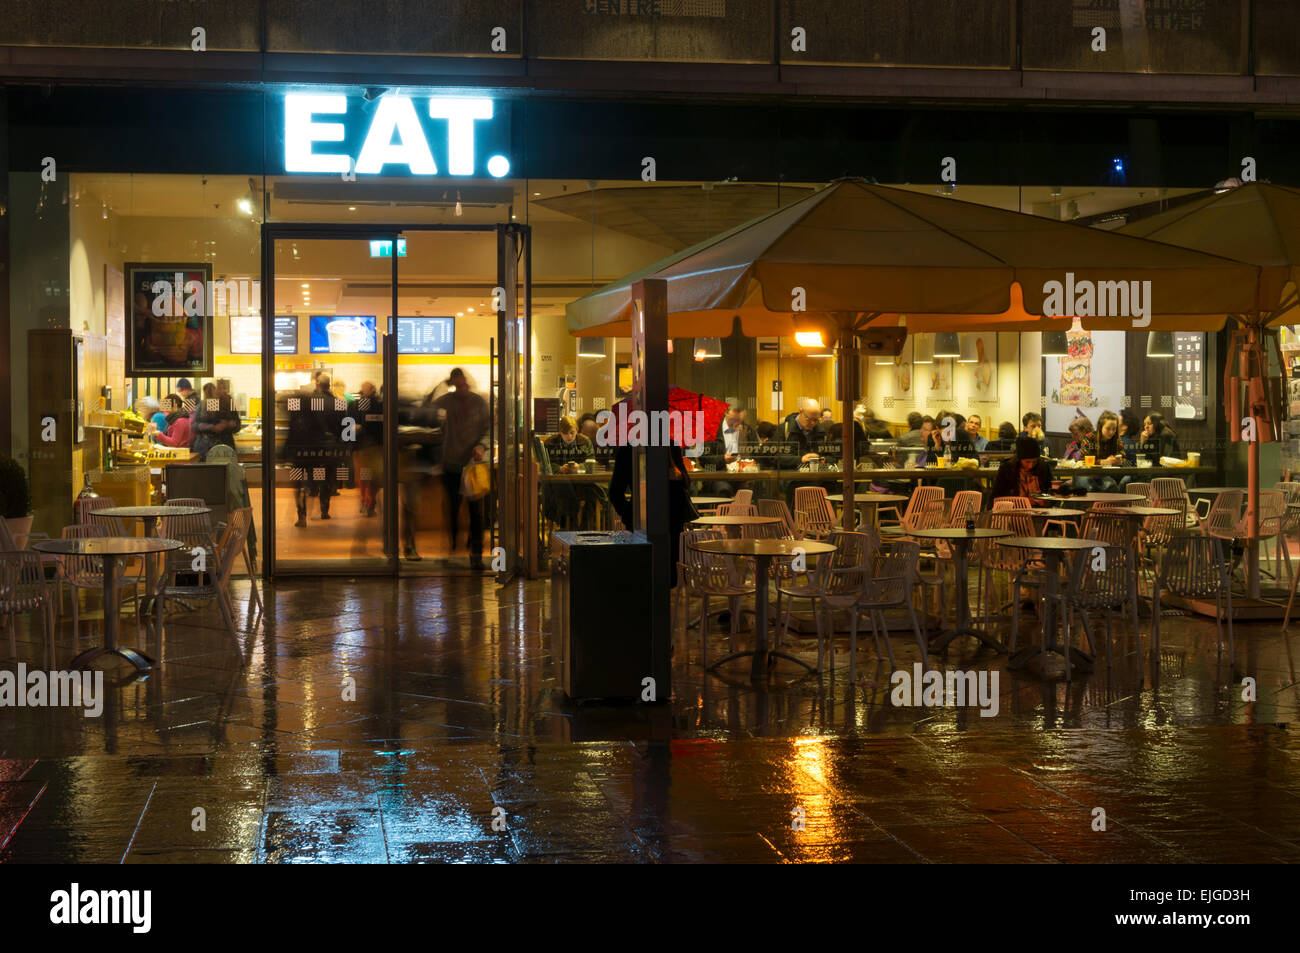 Branch of Eat sandwich shop on the Southbank in London at night in the rain. - Stock Image